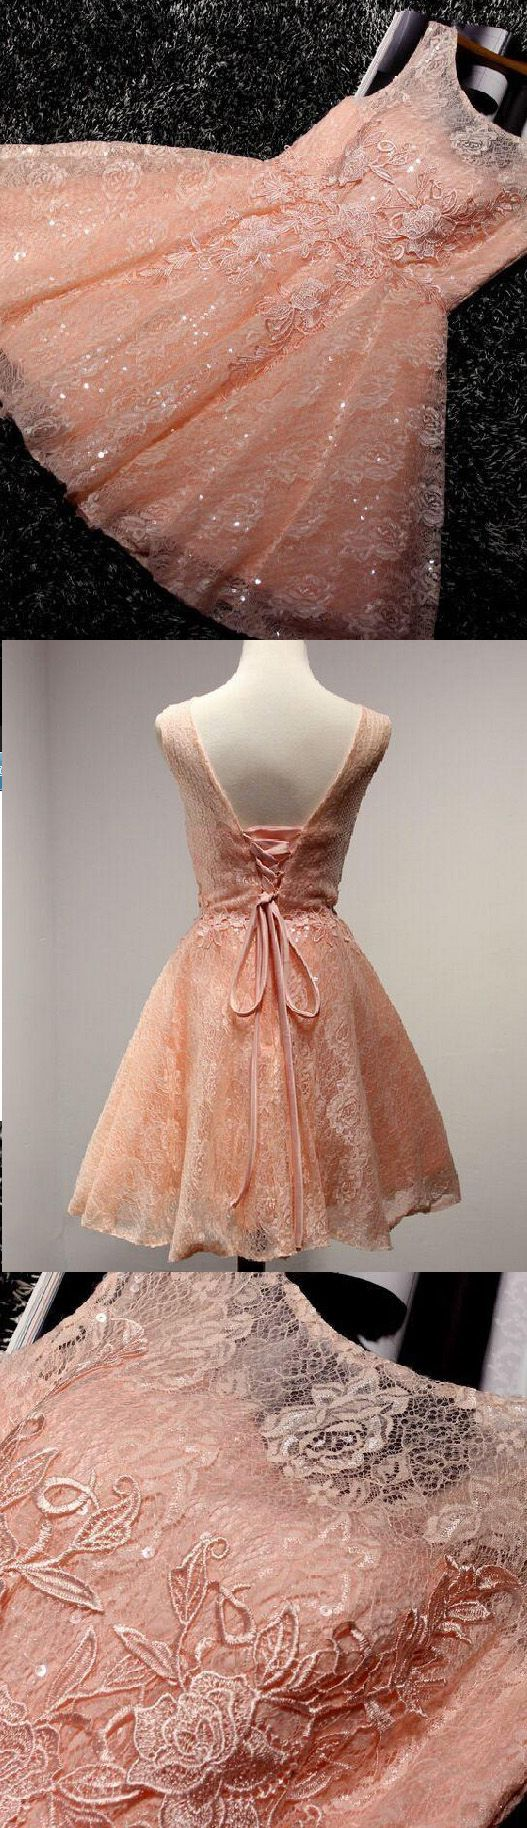 Short Prom Dresses, Sexy Prom dresses, Prom Dresses Short, Orange Prom Dresses, Sequin Prom Dresses, Prom Short Dresses, Short Homecoming Dresses, Sexy Homecoming Dresses, Sexy Short Dresses, Orange Homecoming Dresses, Sleeveless Homecoming Dresses, Mini Homecoming Dresses